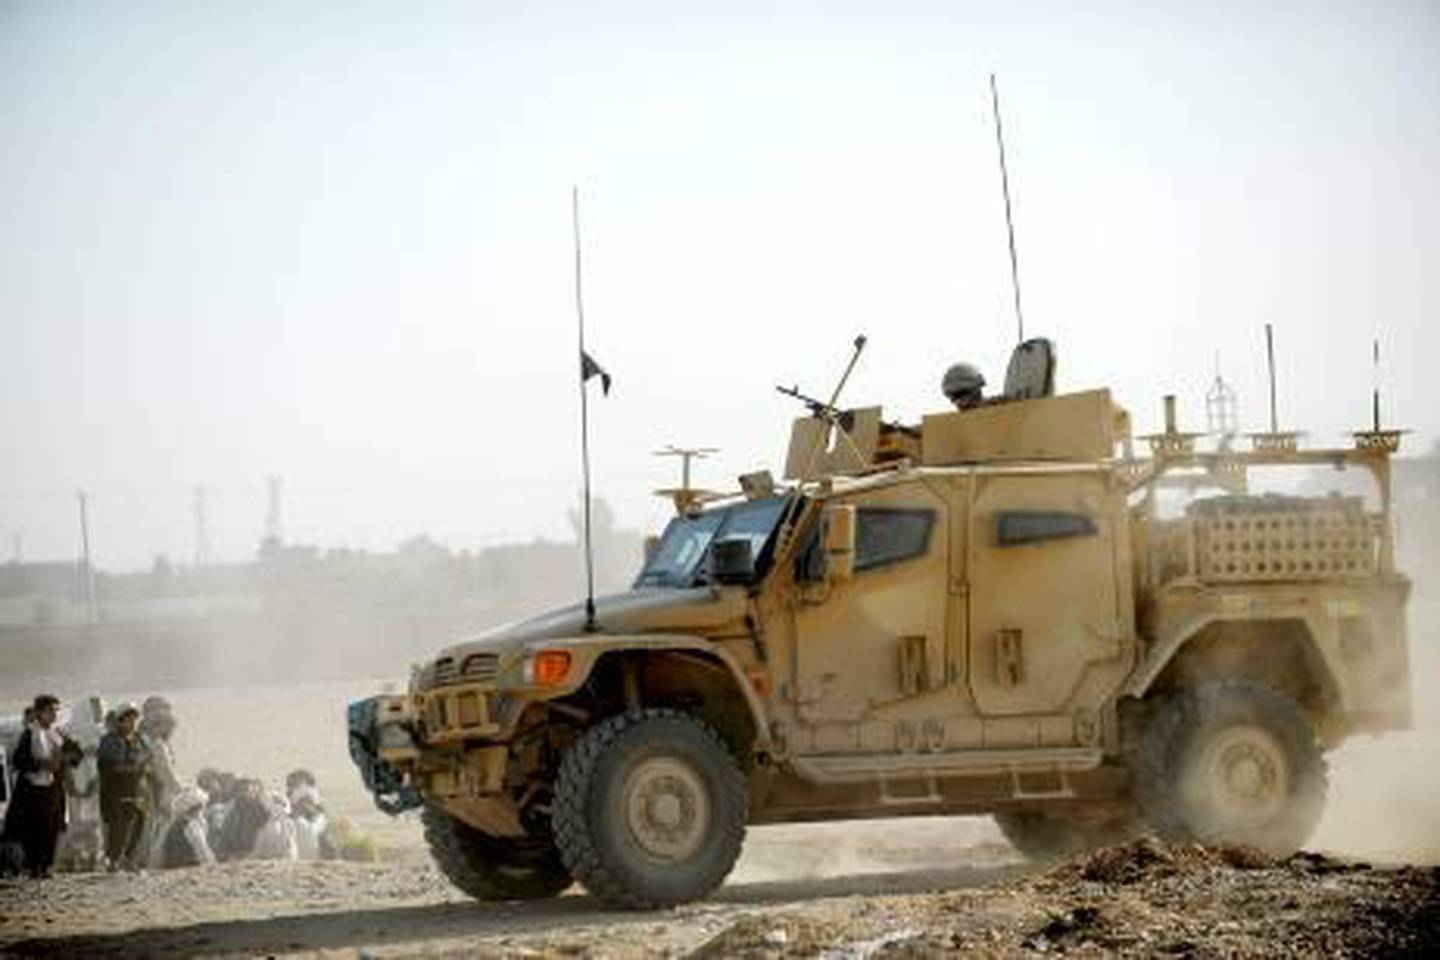 British Army troops from 1st Battalion, The Scots Guards, patrol using the new Husky armoured vehicle in Lashkar Gar, Helmand province, Afghanistan in a picture released October 17, 2010. Britain's defence budget will be cut by less than 10 percent over the next four years after officials reached an agreement late on Friday on the outline of a sweeping review of the country's armed forces.  REUTERS/Sgt Rupert Frere/Crown Copyright/handout   (AFGHANISTAN - Tags: MILITARY CIVIL UNREST) THIS IMAGE HAS BEEN SUPPLIED BY A THIRD PARTY. IT IS DISTRIBUTED, EXACTLY AS RECEIVED BY REUTERS, AS A SERVICE TO CLIENTS. NO SALES. NO ARCHIVES. FOR EDITORIAL USE ONLY. NOT FOR SALE FOR MARKETING OR ADVERTISING CAMPAIGNS *** Local Caption ***  CLH104_BRITAIN-DEFE_1017_11.JPG